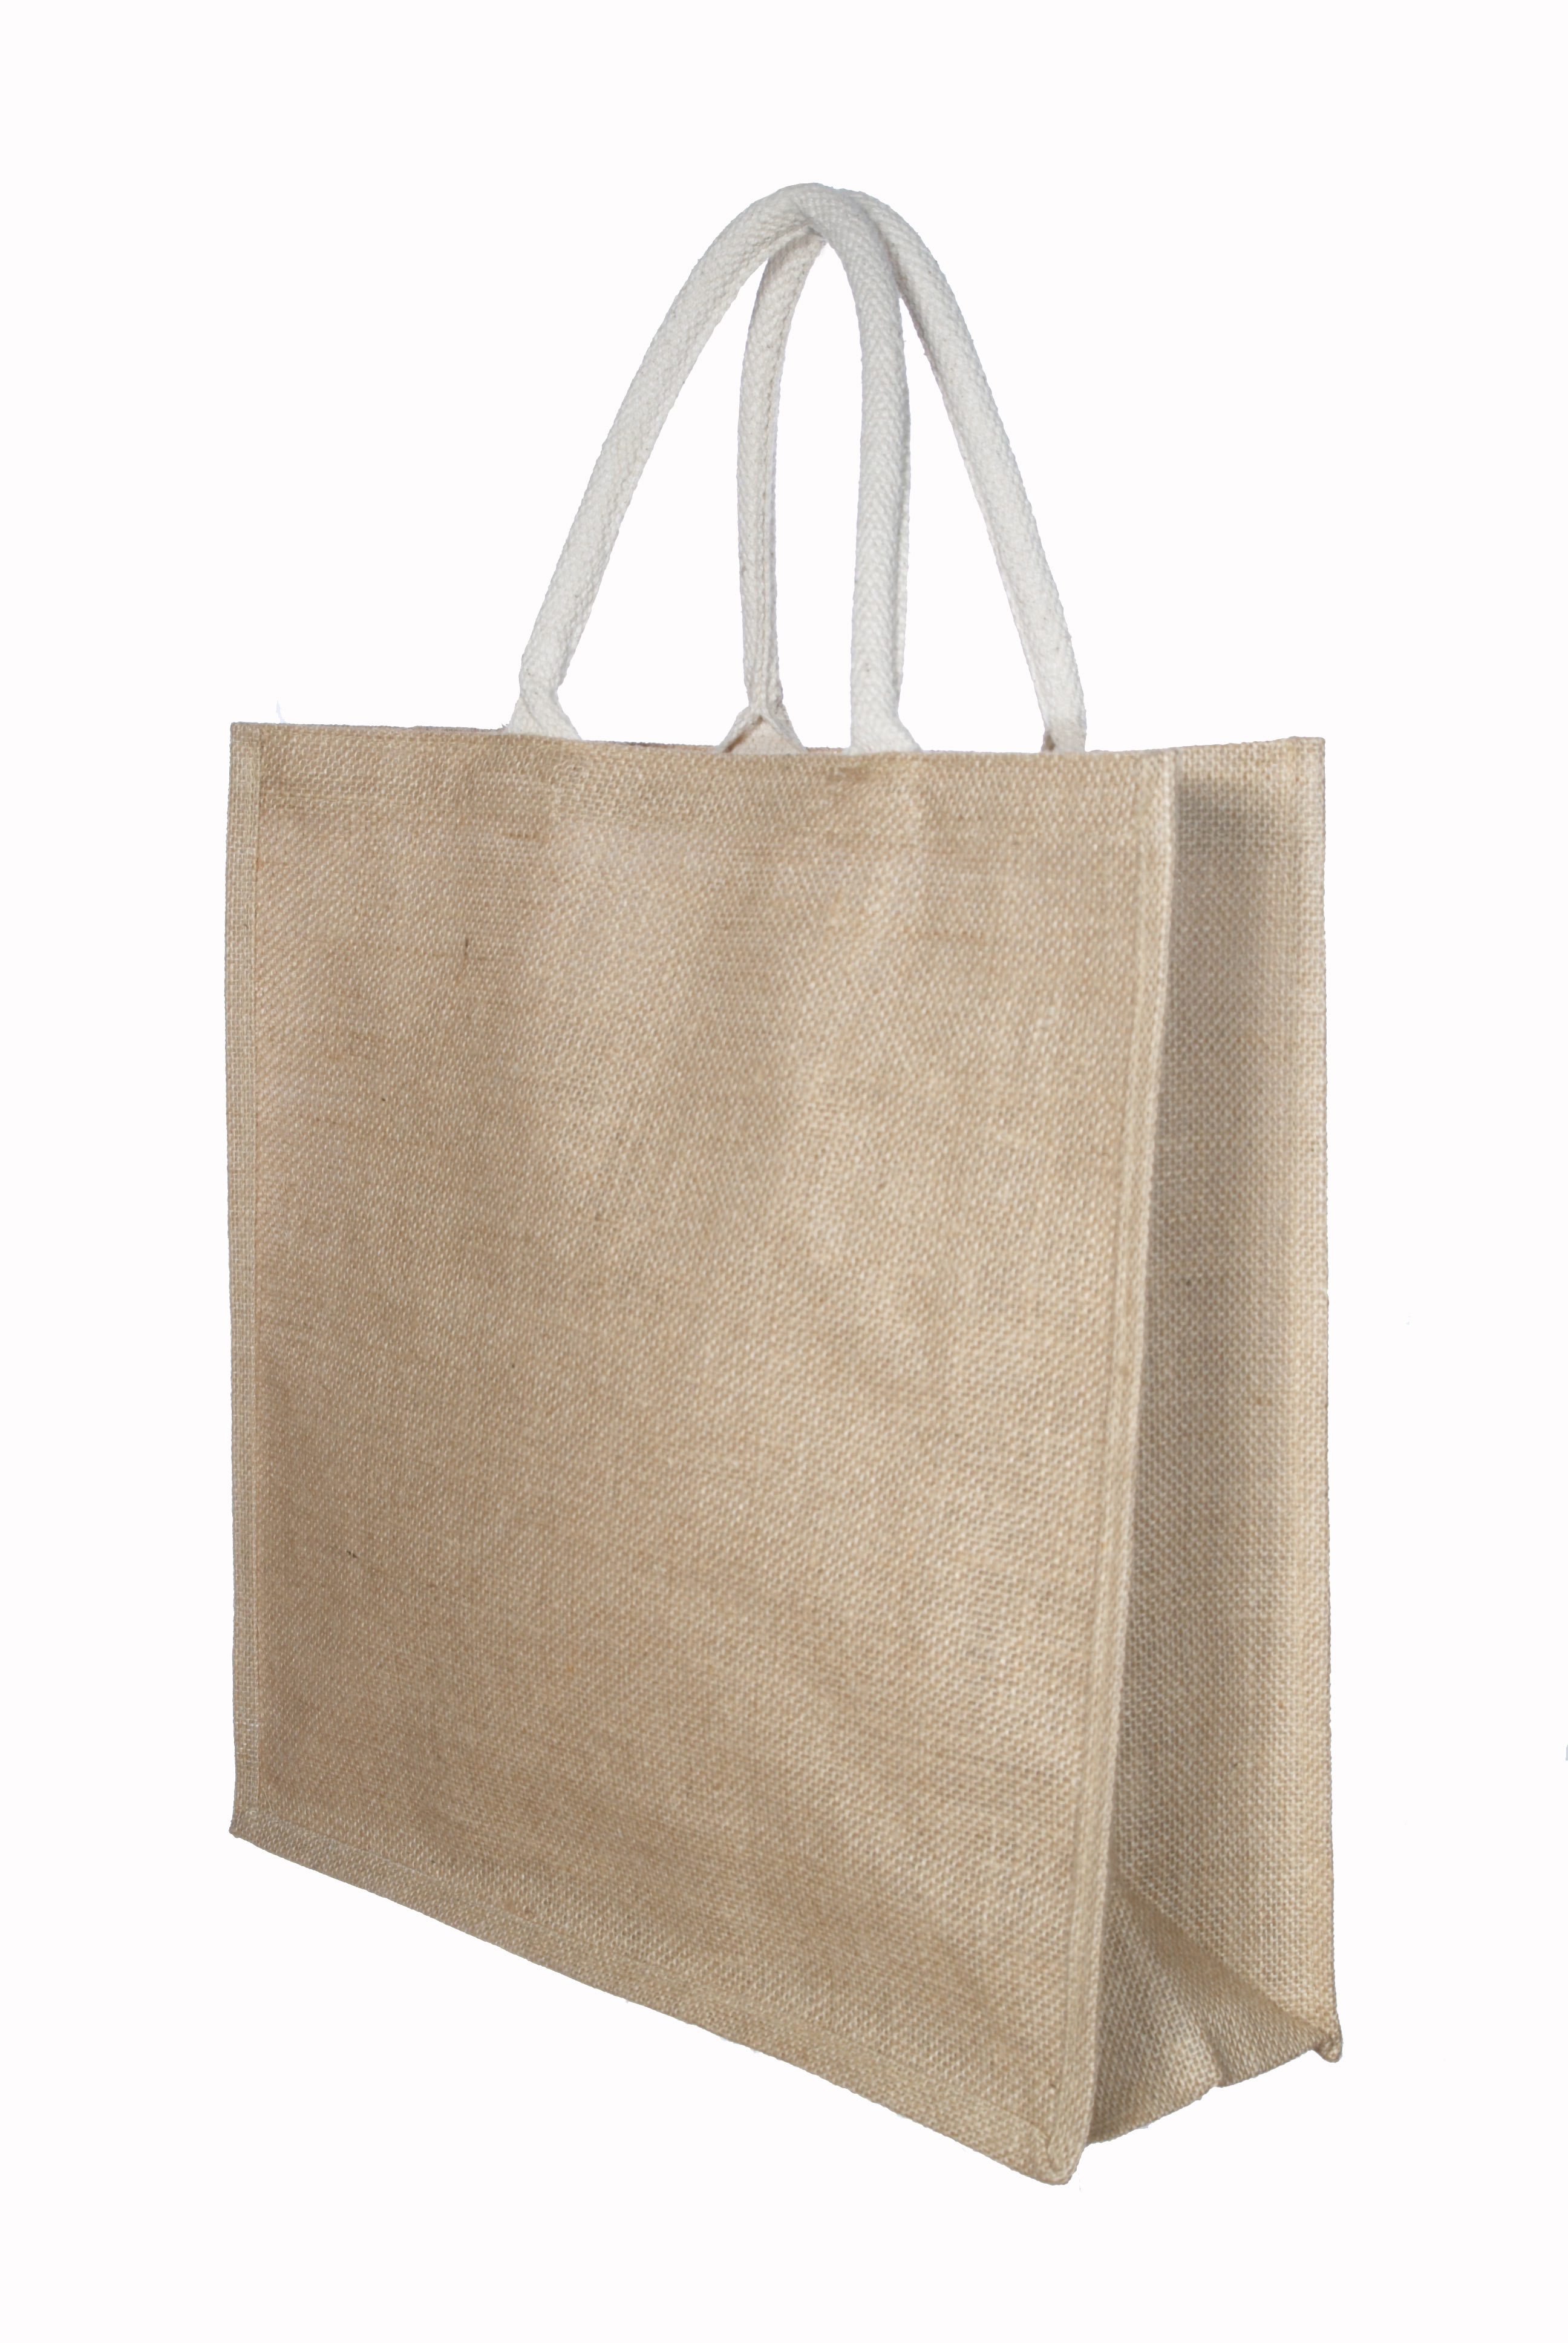 Market Jute Shopper